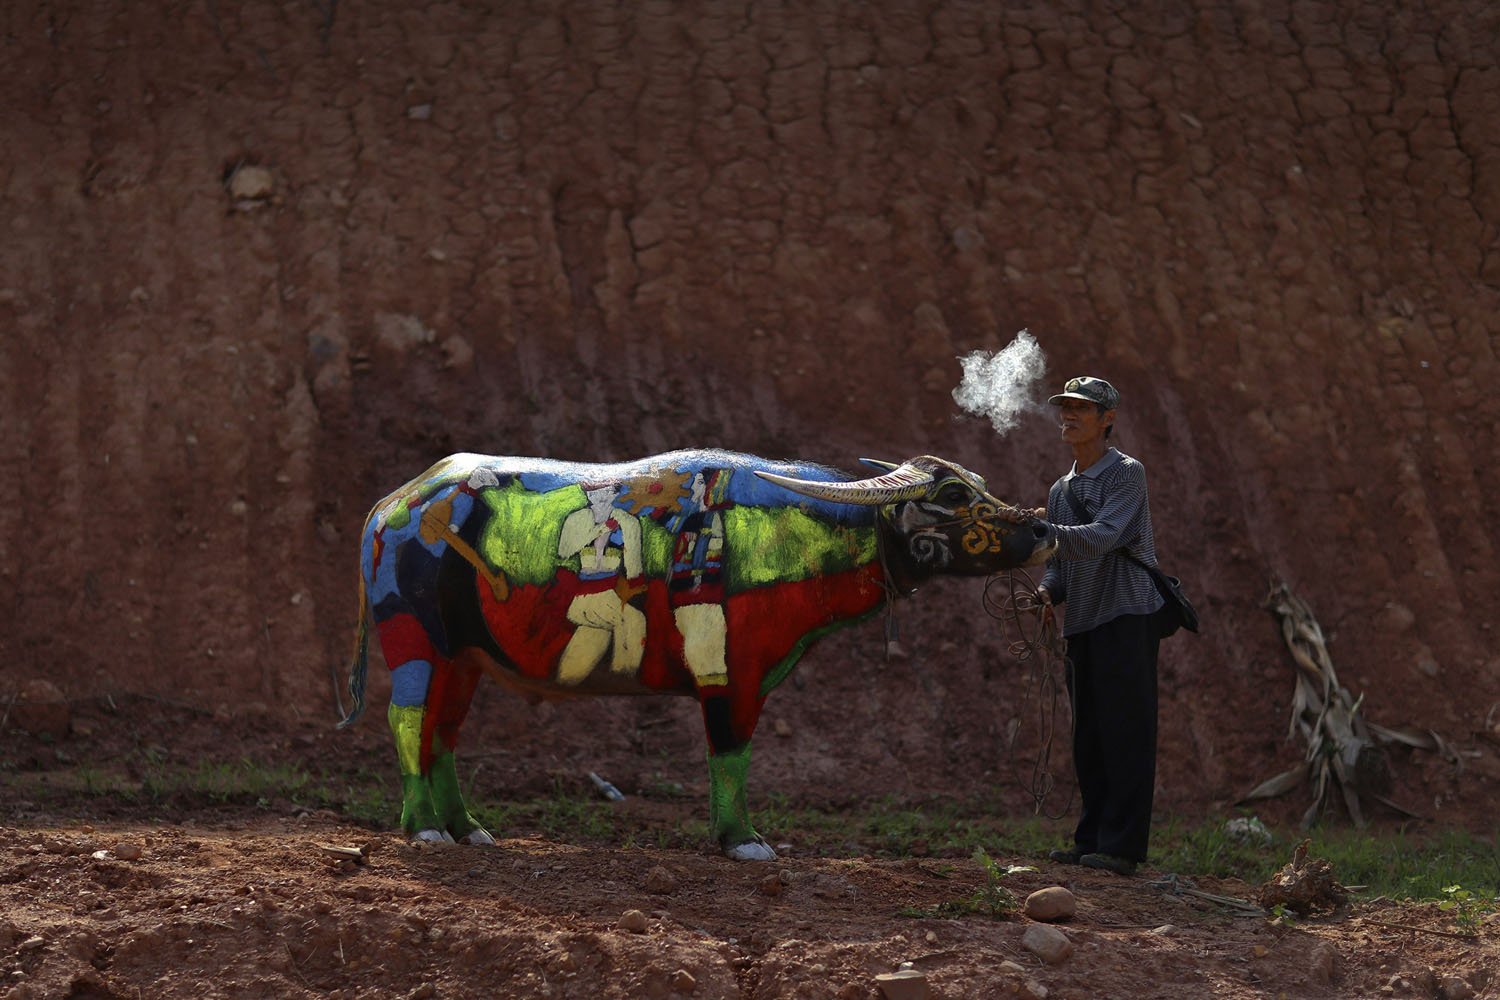 A man smokes as he waits with his painted buffalo before a buffalo bodypainting competition in Jiangcheng county, Yunnan province, China on May 18, 2014.